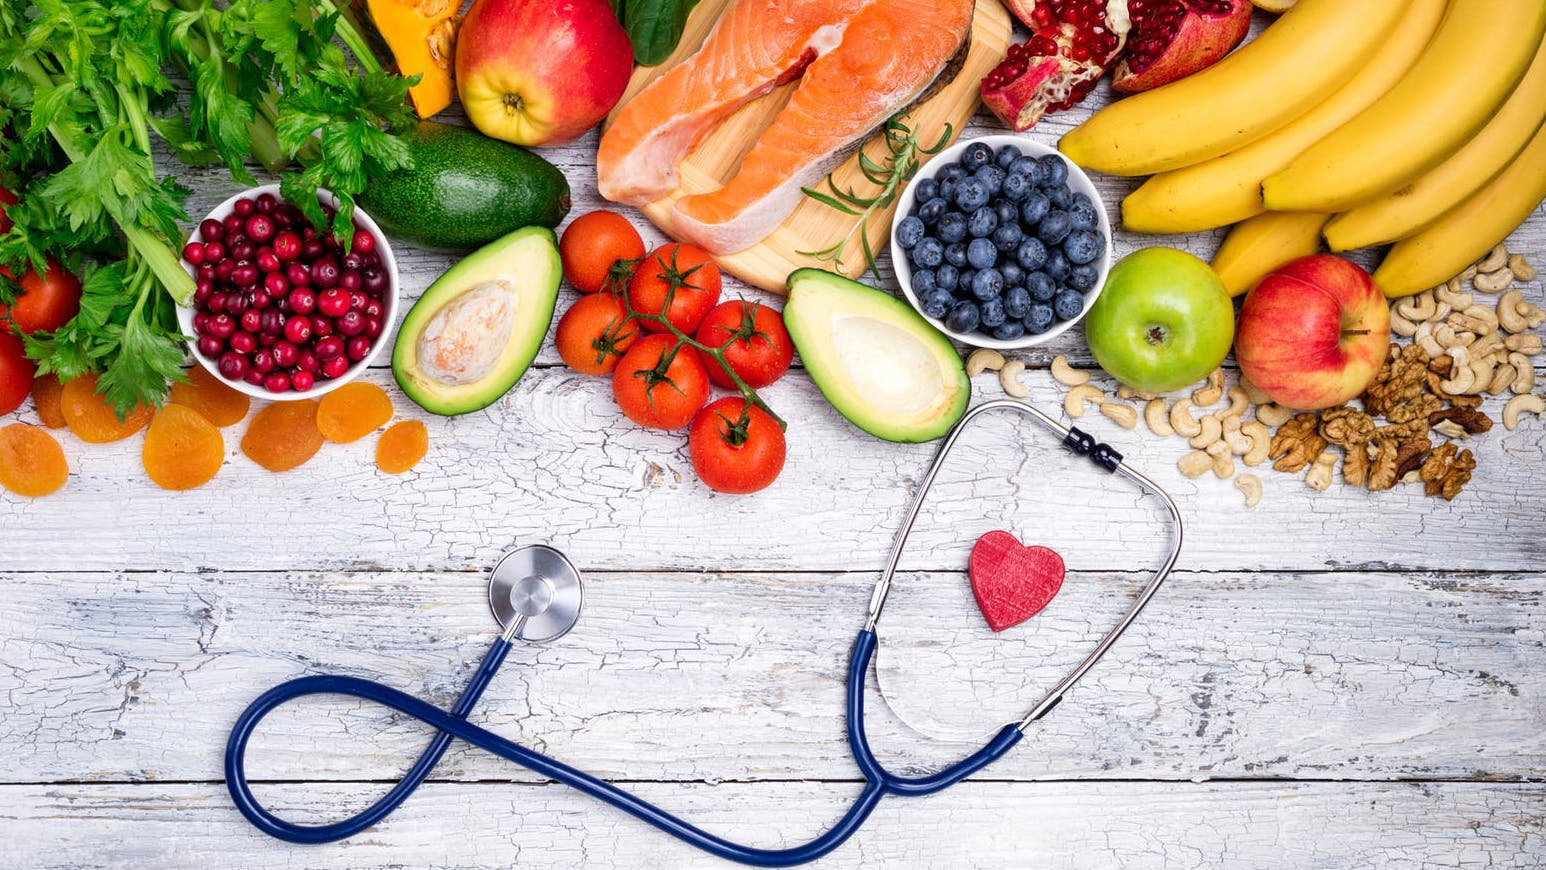 Medical students learn almost nothing about nutrition and lifestyle